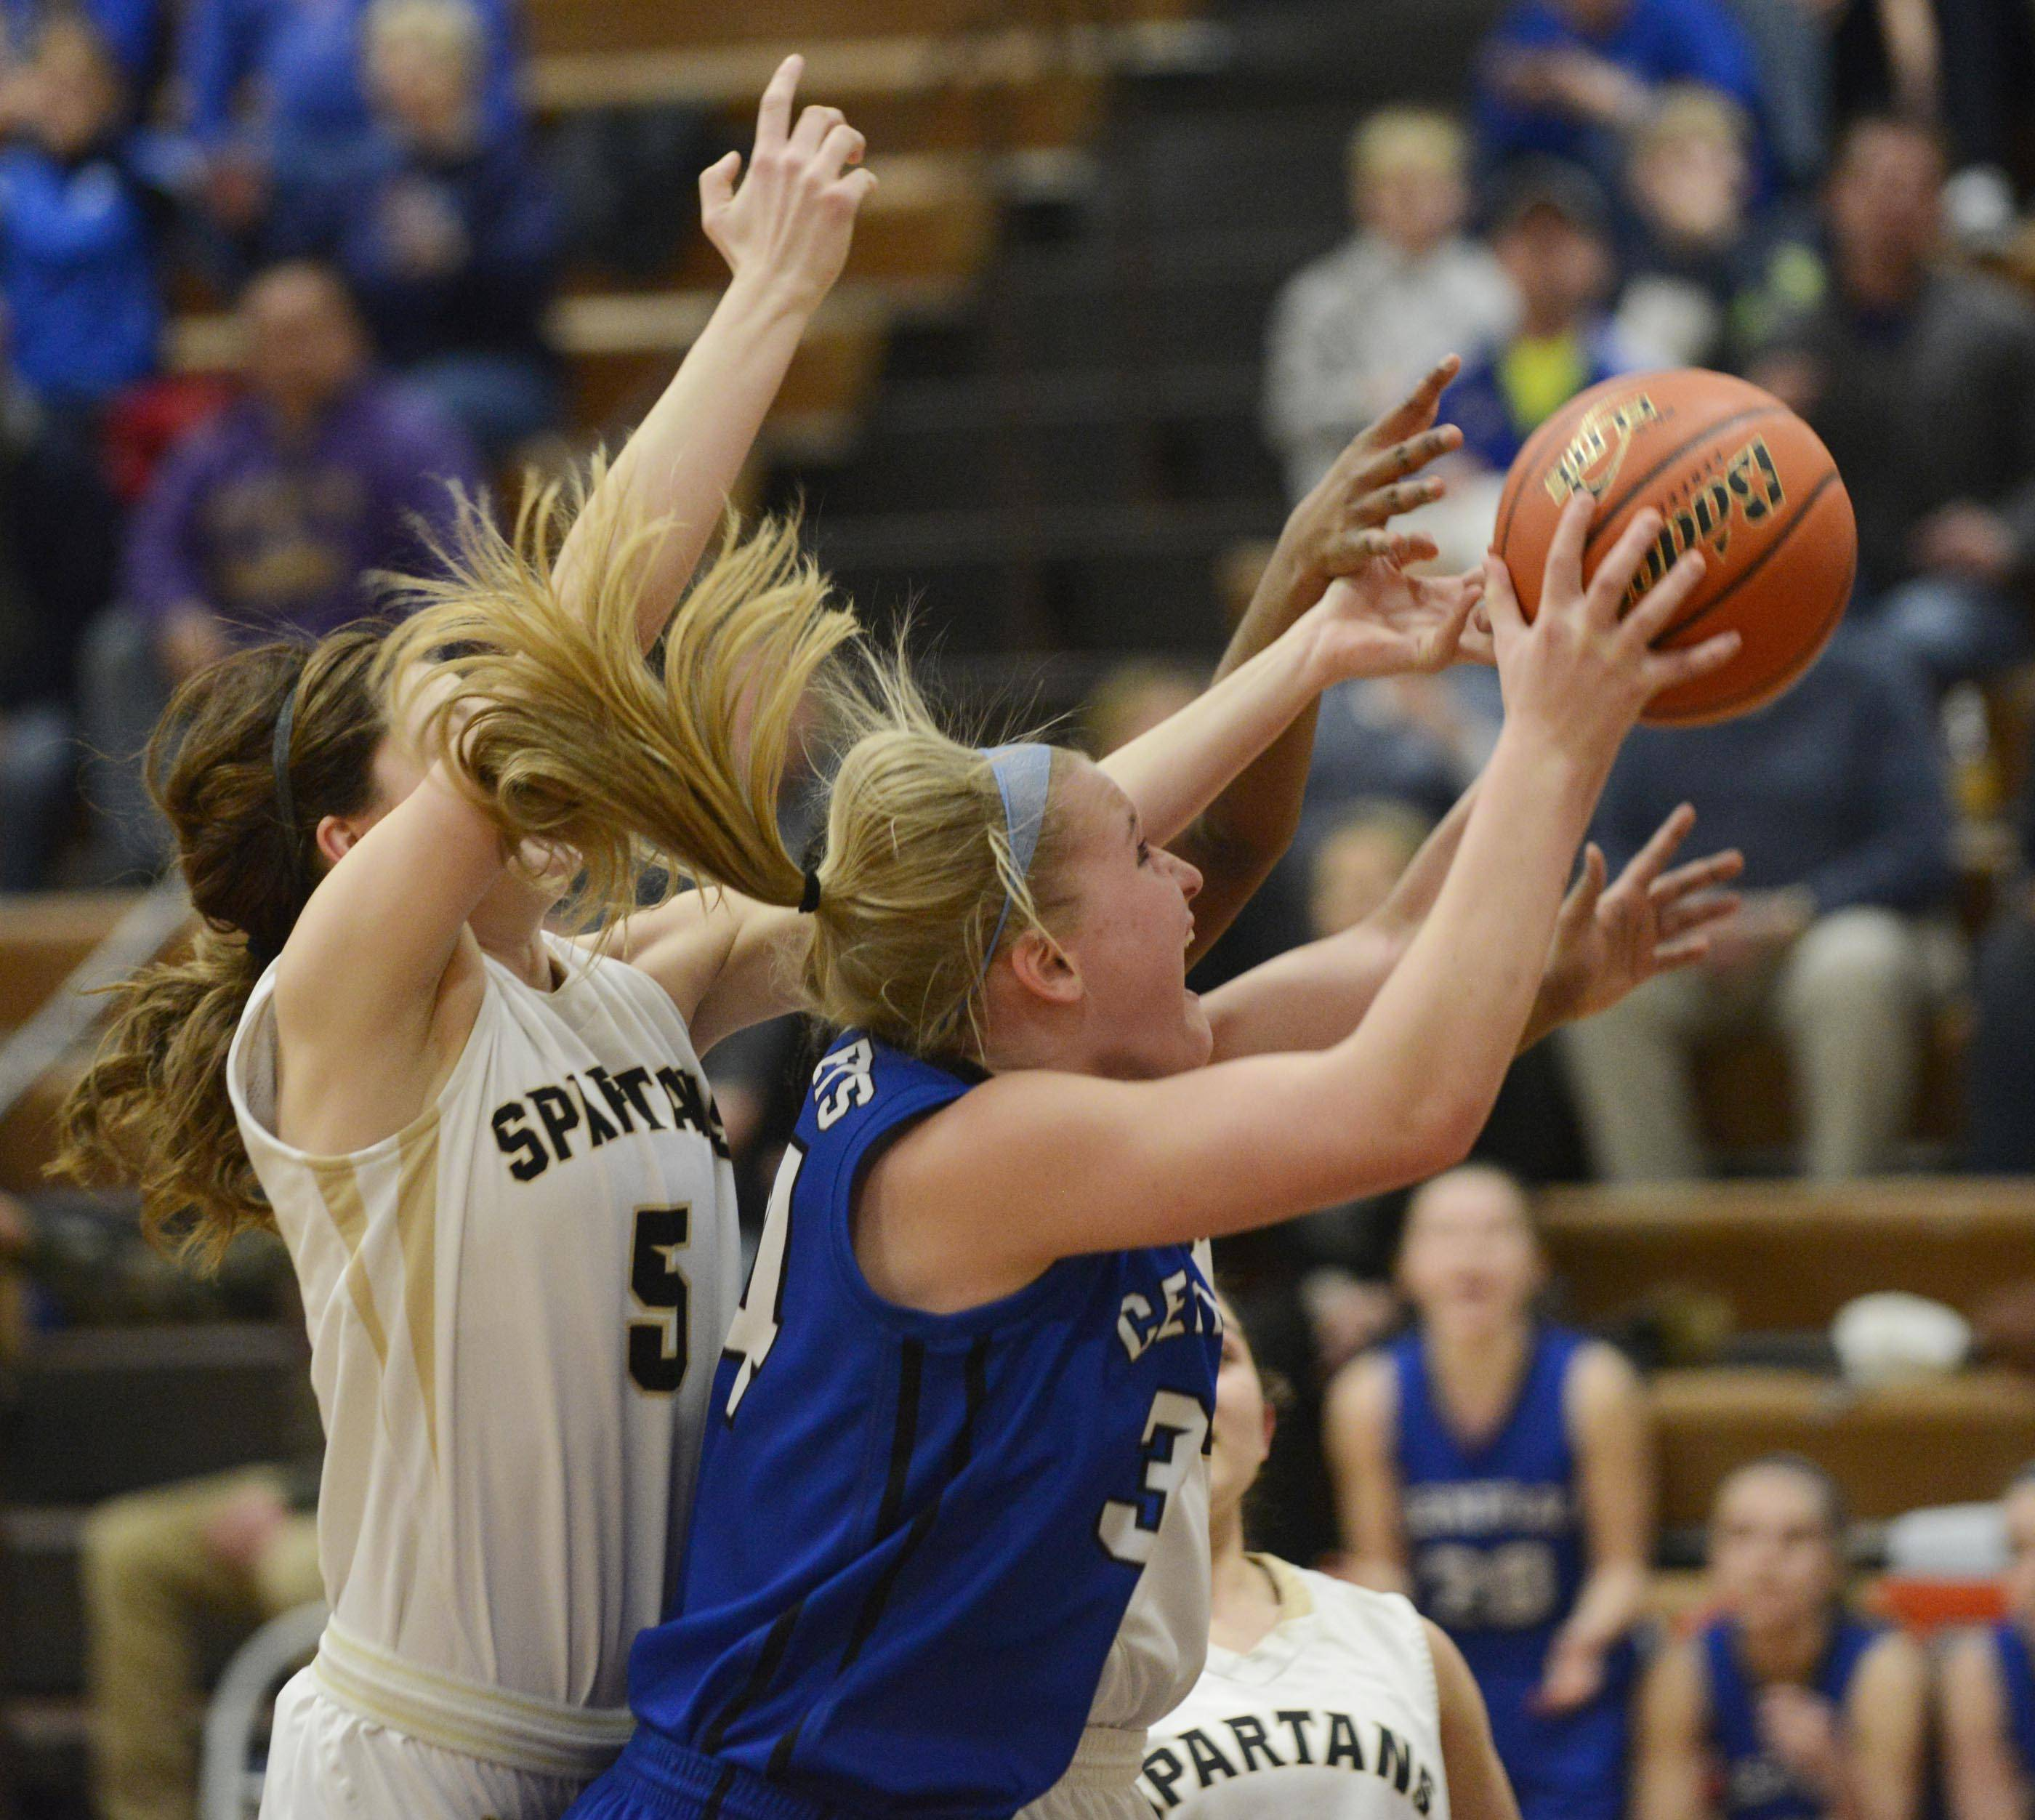 Burlington Central's Samantha Pryor grabs a rebound.